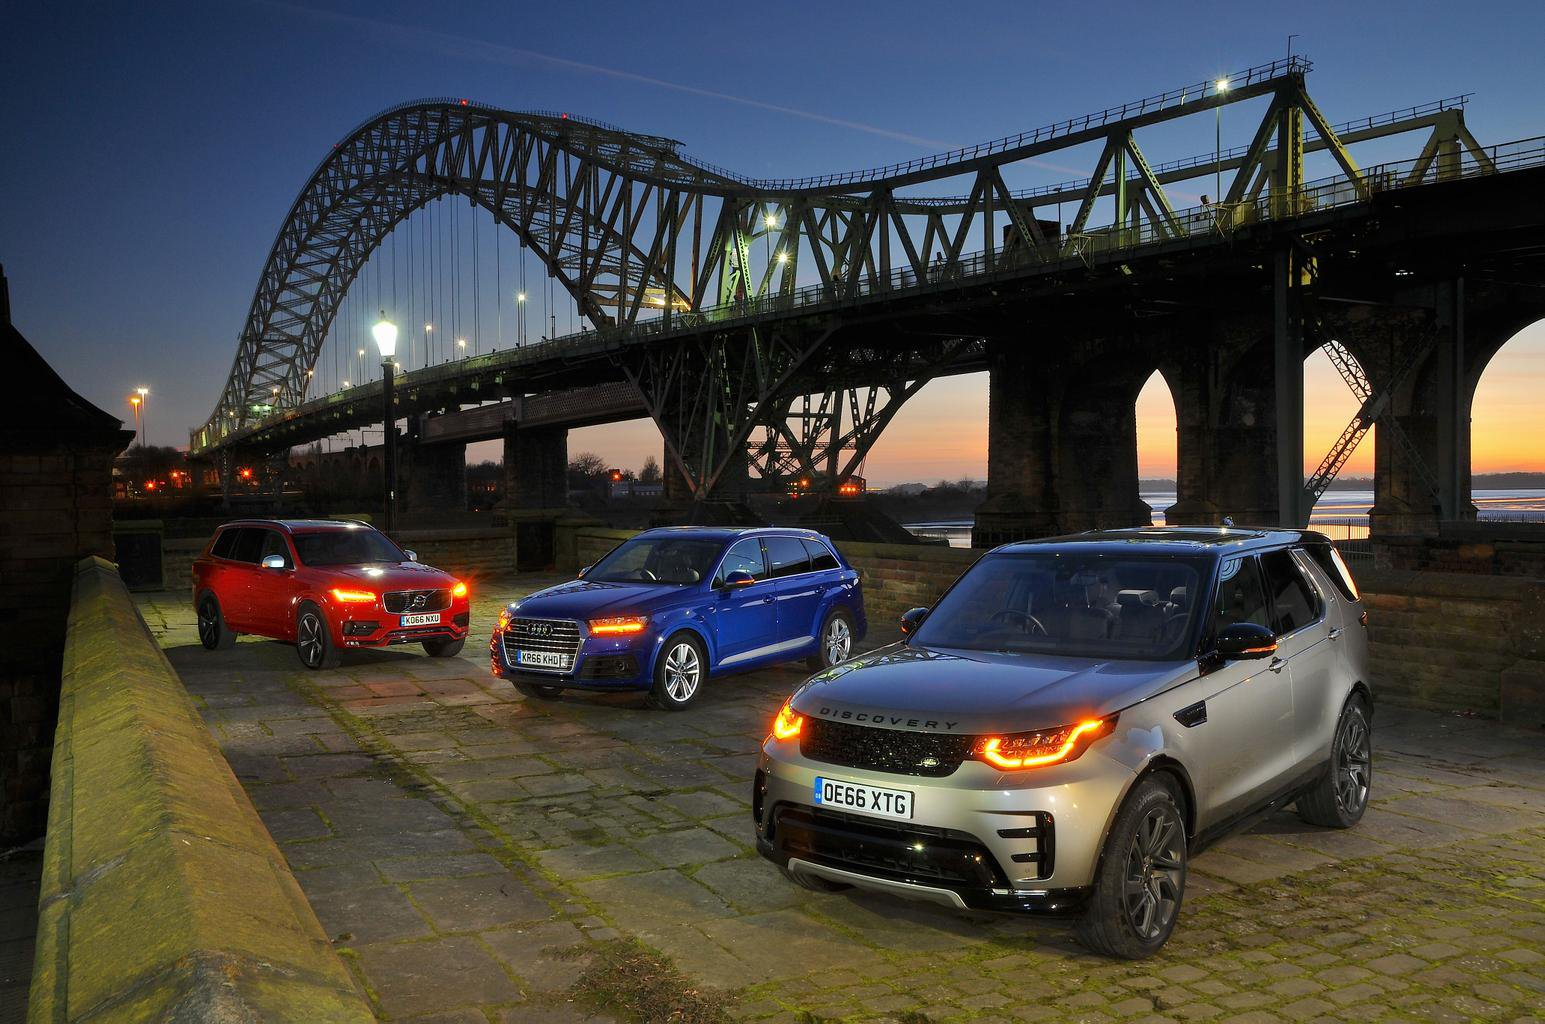 Land Rover Discovery, Audi Q7 and Volvo XC90